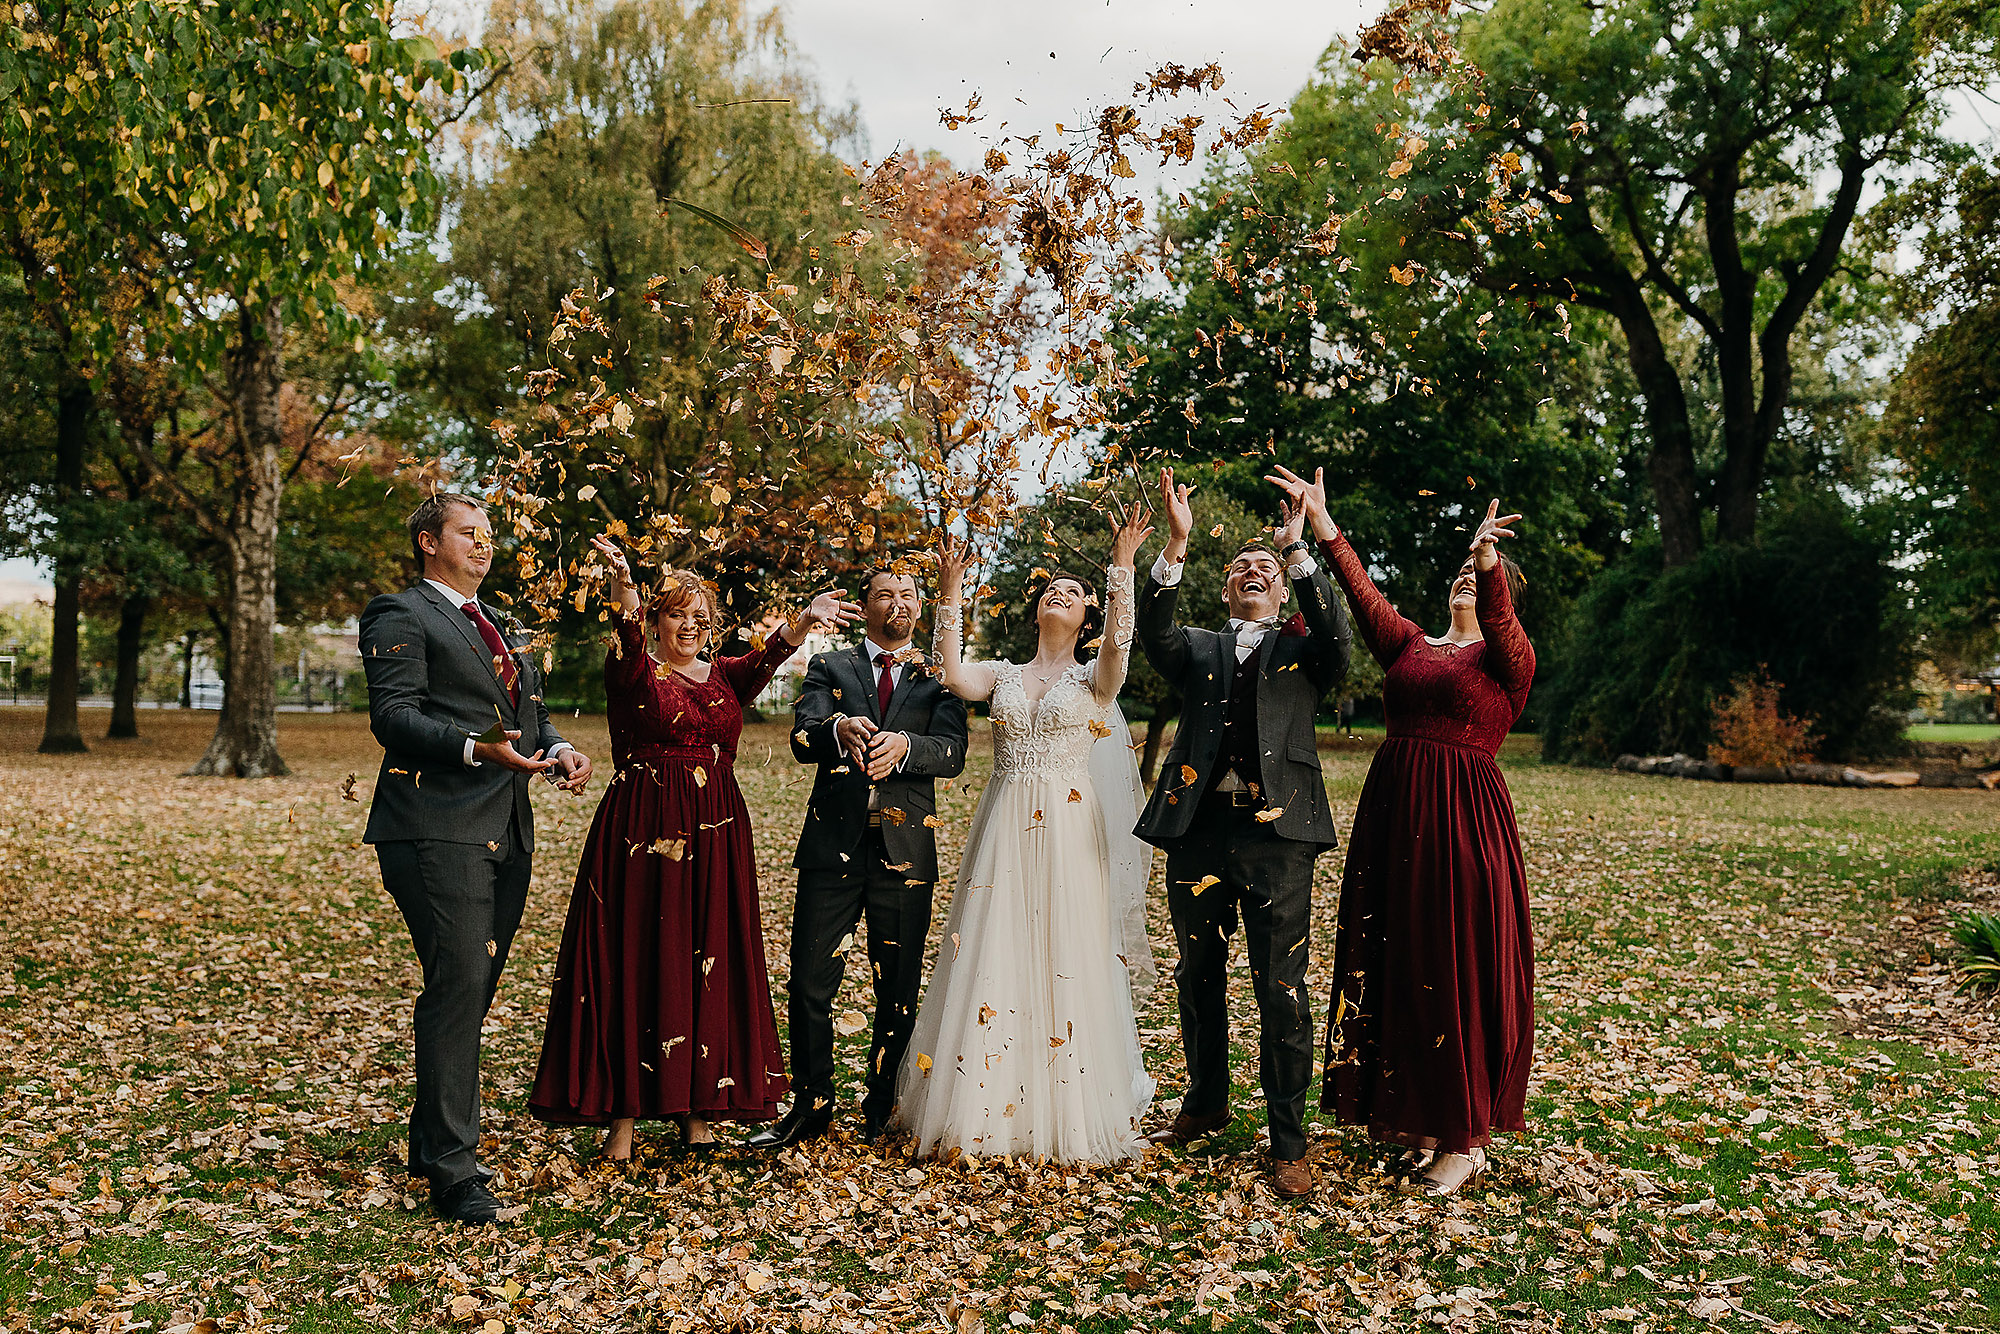 bridal party throwing leaves autumn wedding riccarton house christchurch wedding photographer